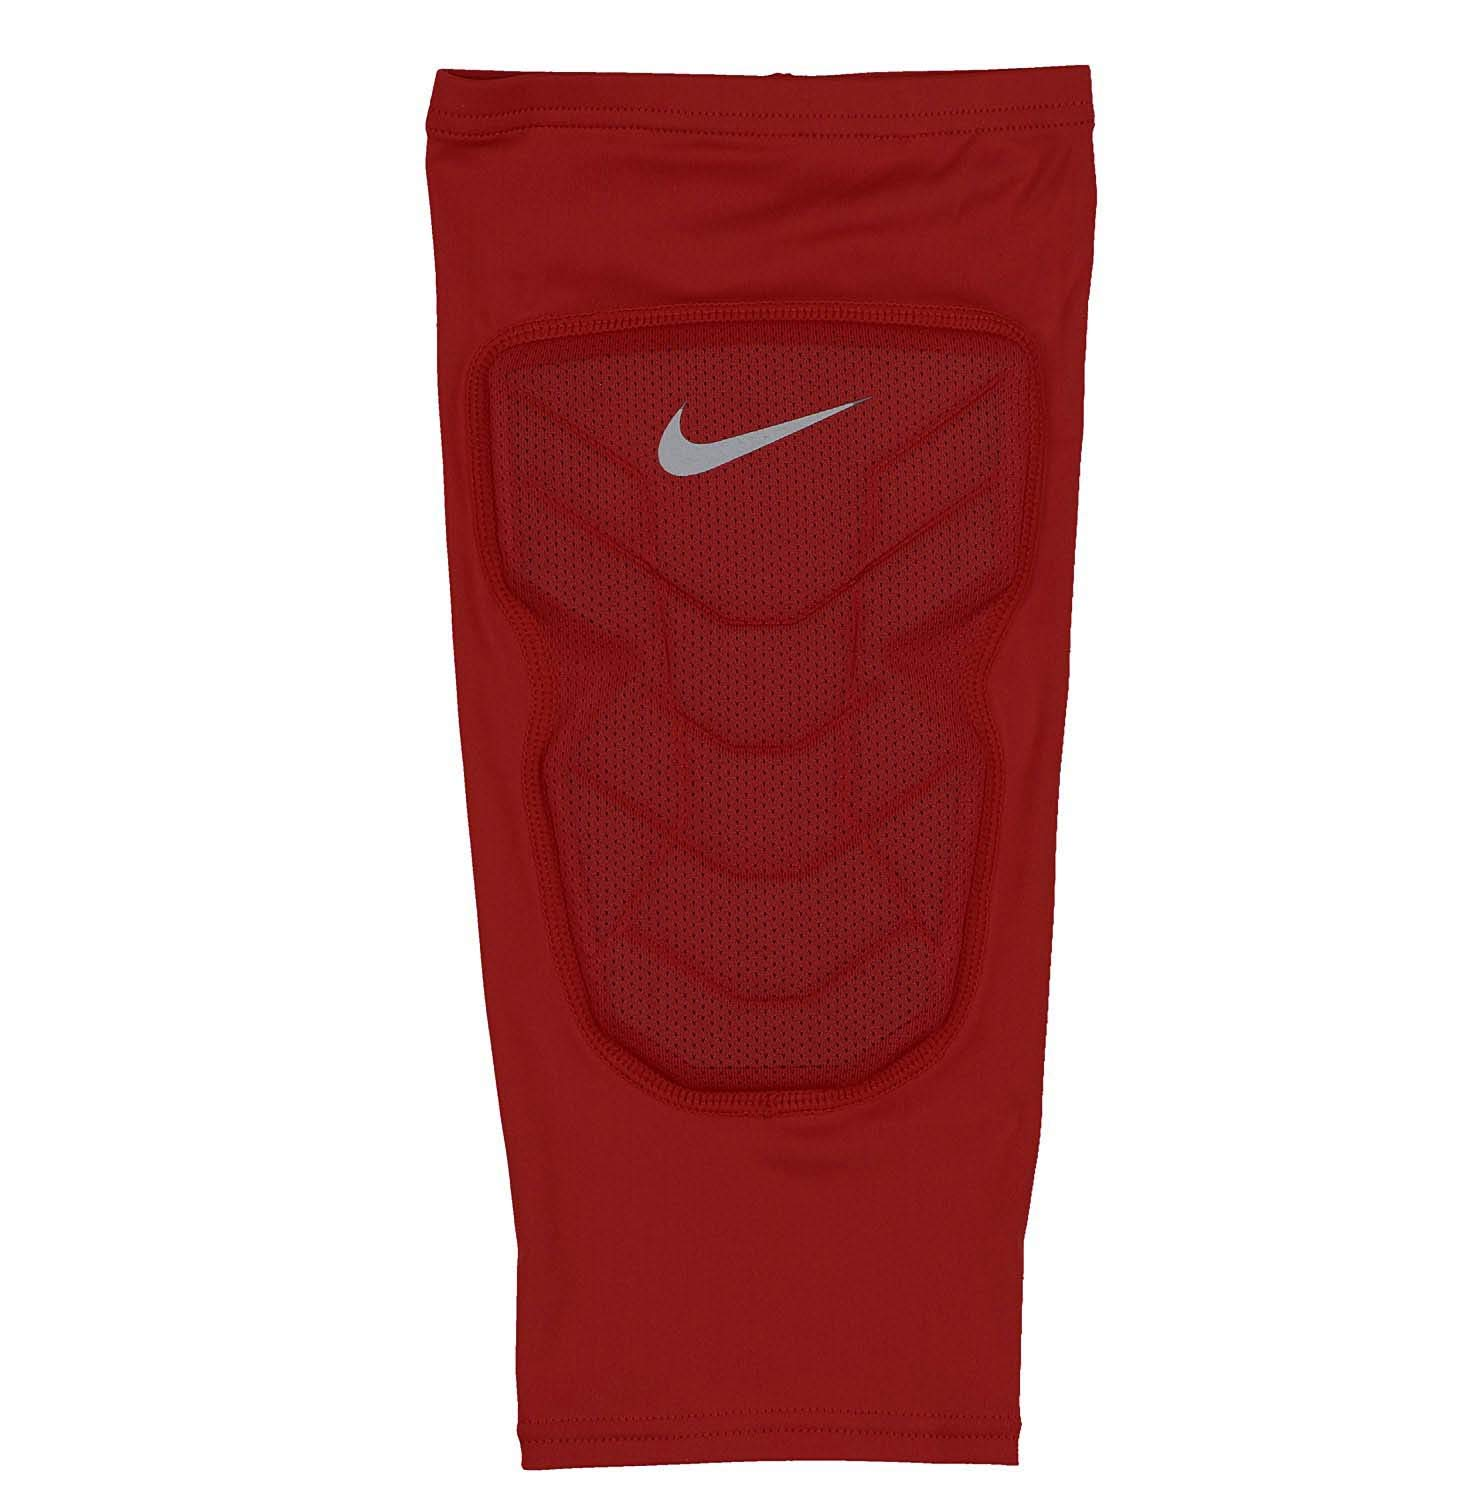 745f04495 Amazon.com : Nike Men's Pro Combat Hyperstrong Padded Basketball Knee  Sleeve Medium Crimson Red/Gray : Sports & Outdoors